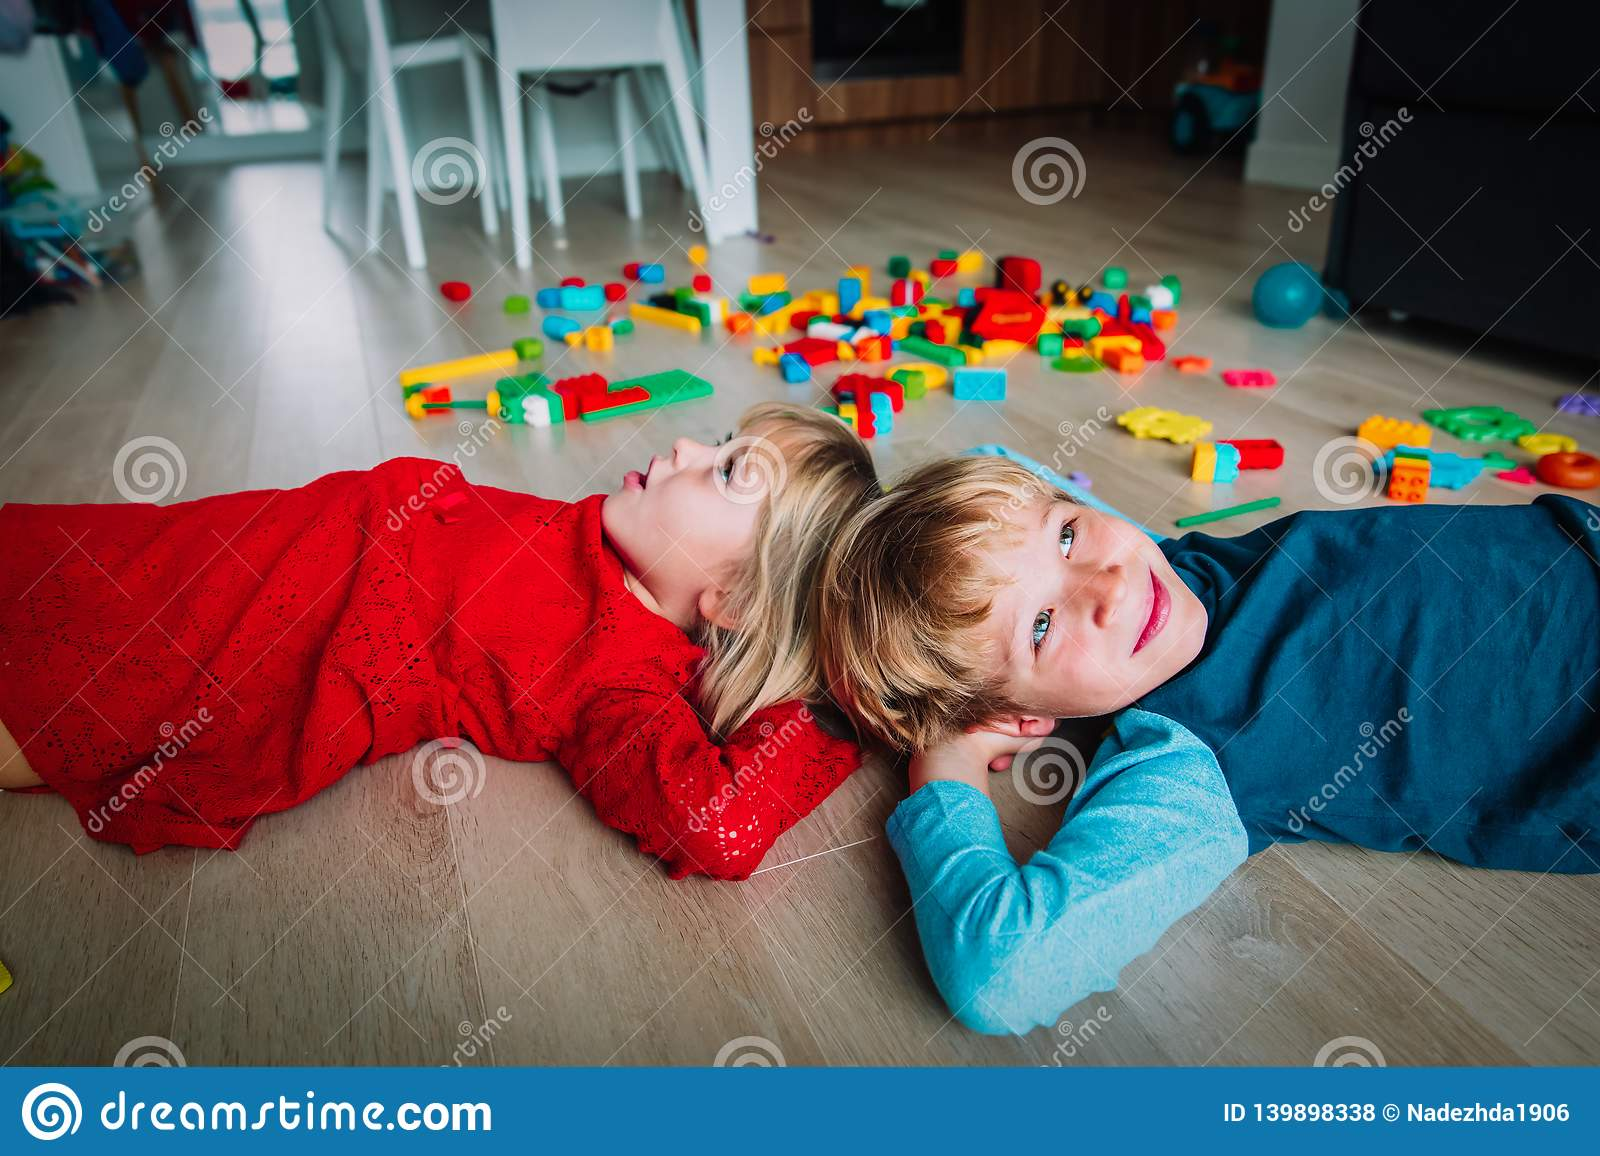 Happy little girl and boy enjoy play home